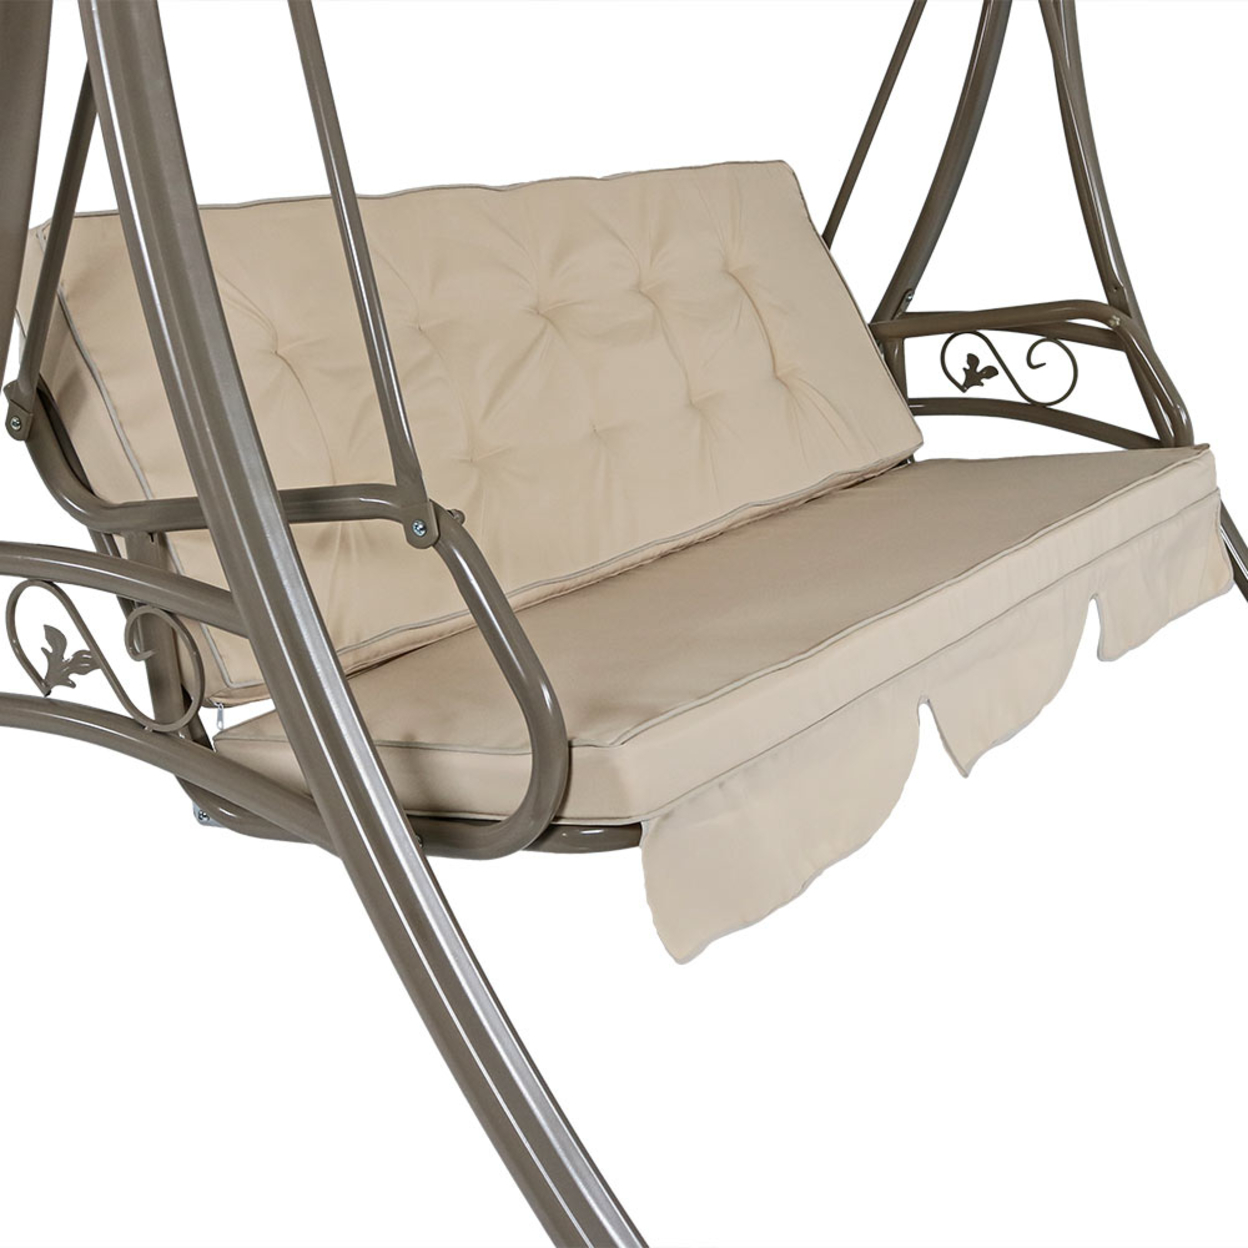 Sunnydaze Deluxe Patio Swing with Heavy Duty Steel, Frame, Beige Cushions and Canopy, Seats 3 People, for Patio, Porch or Yard, 600 Pound... 593ba8592a00e479ef2ed0a8